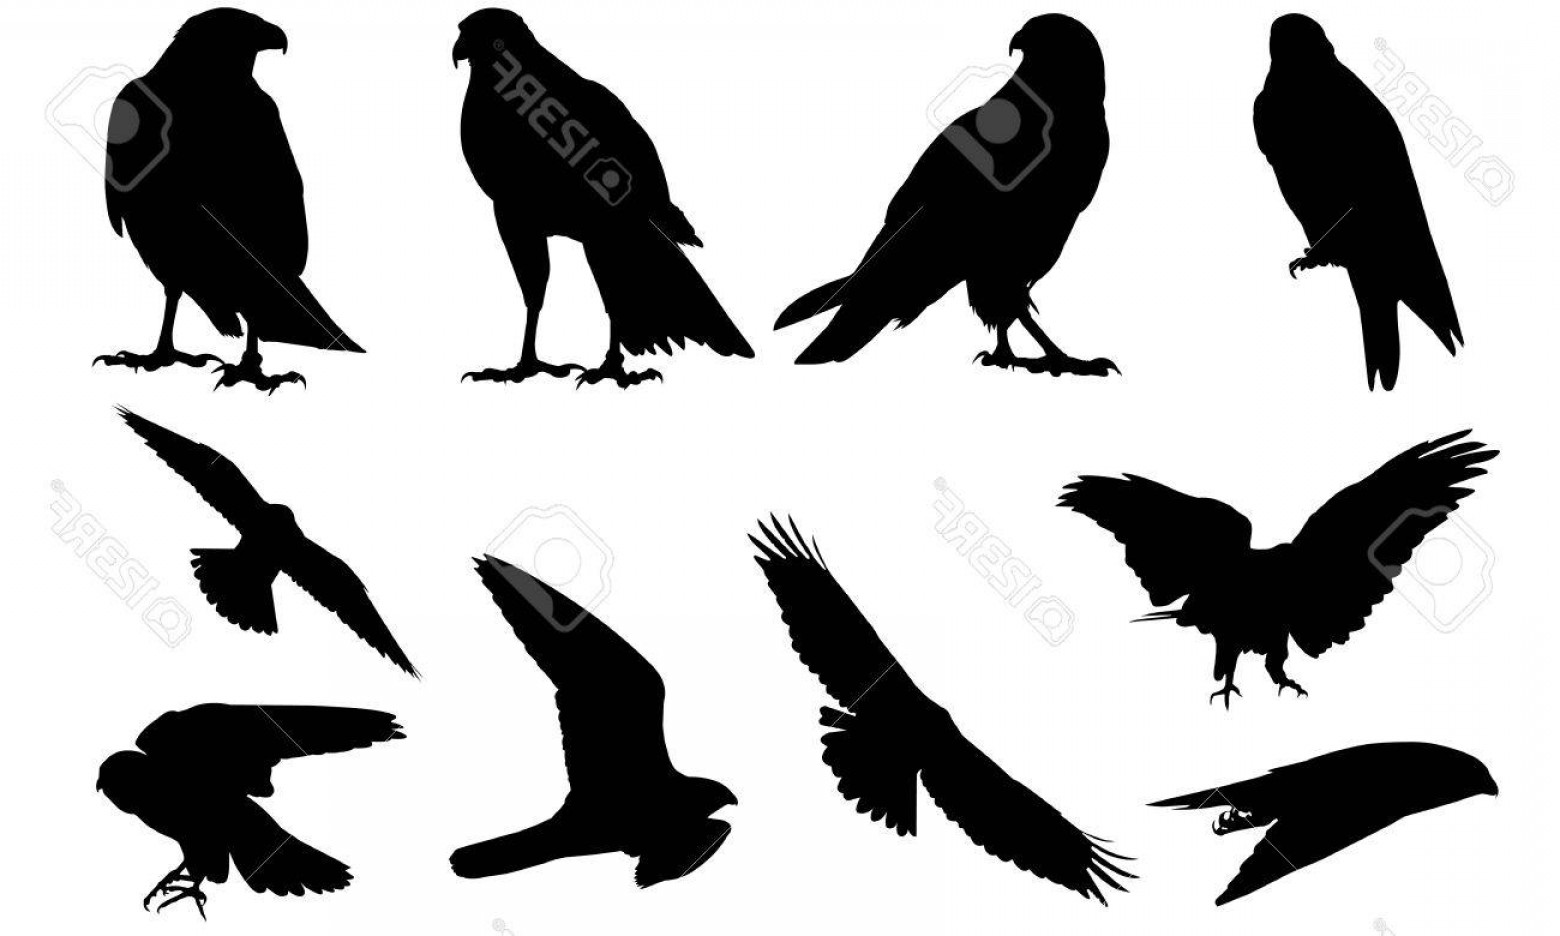 Falcon Silhouette Vector: Photostock Vector Falcon Silhouette Vector Illustration